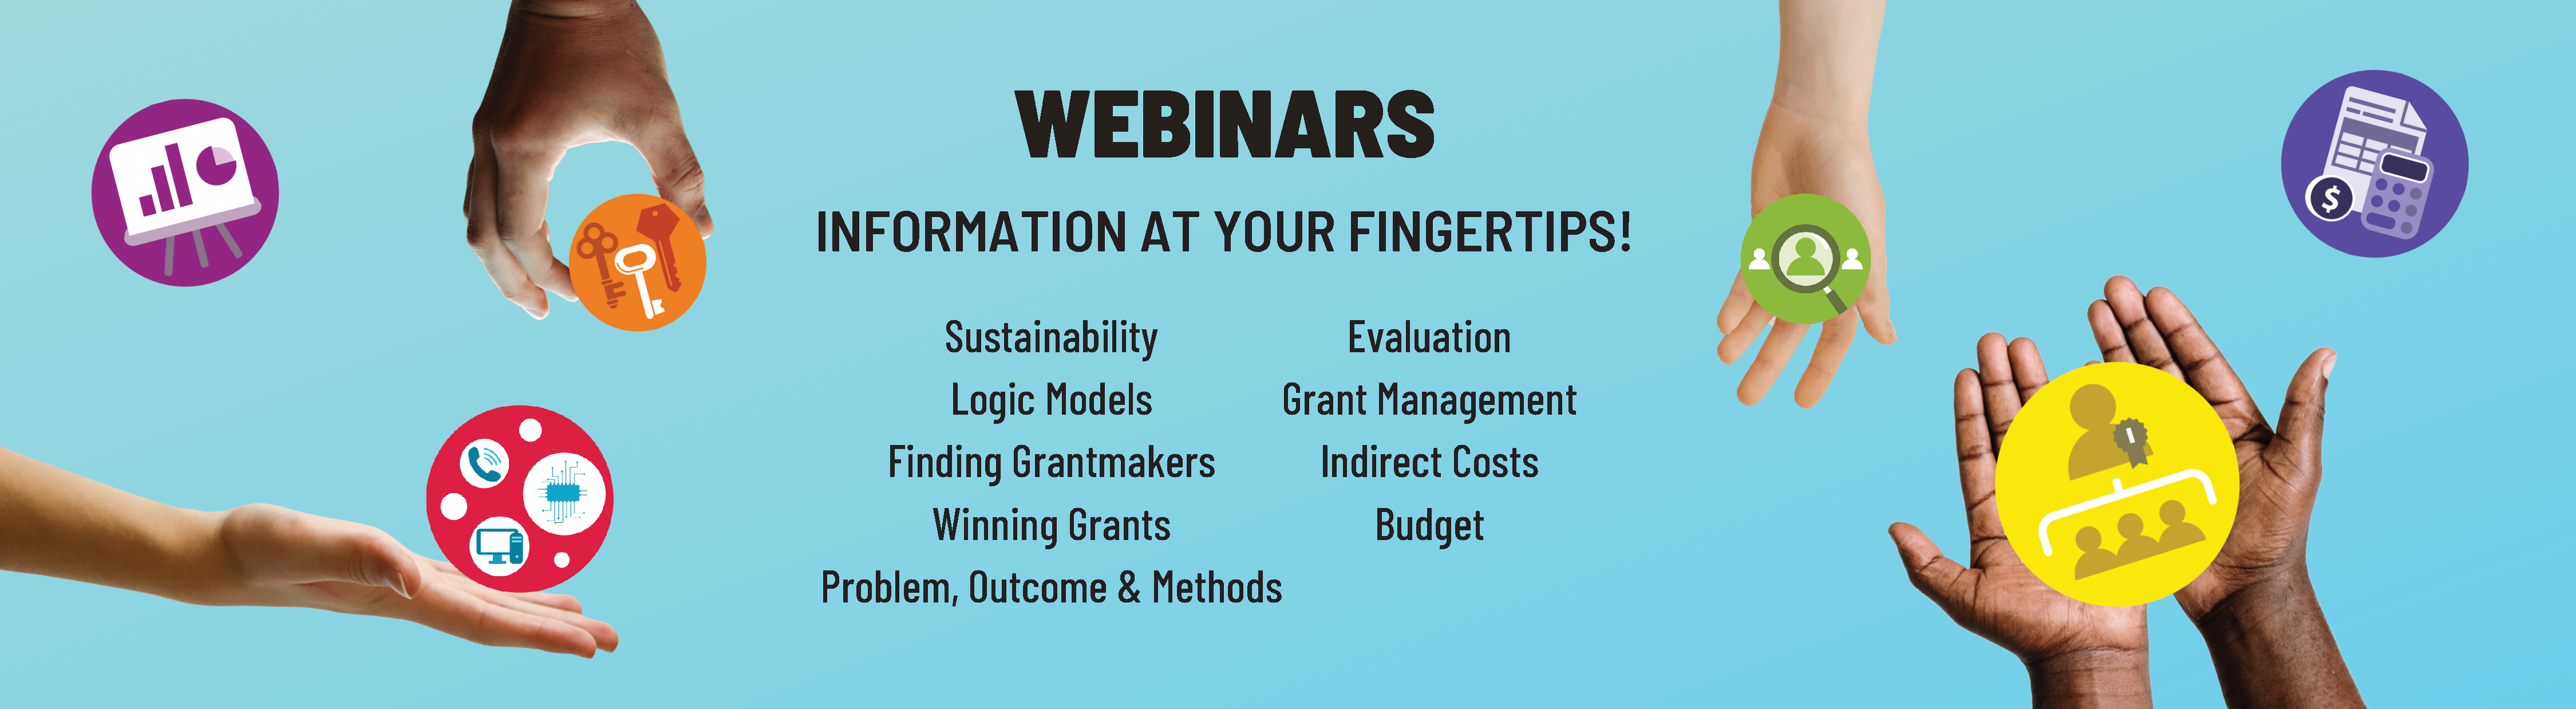 Webinars: Information at your fingertips. Sustainability; Logic Models; Management; Finding Grantmakers; Evaluation; Winning Grants; Indirect Costs; Budget; Problem, Outcome & Methods